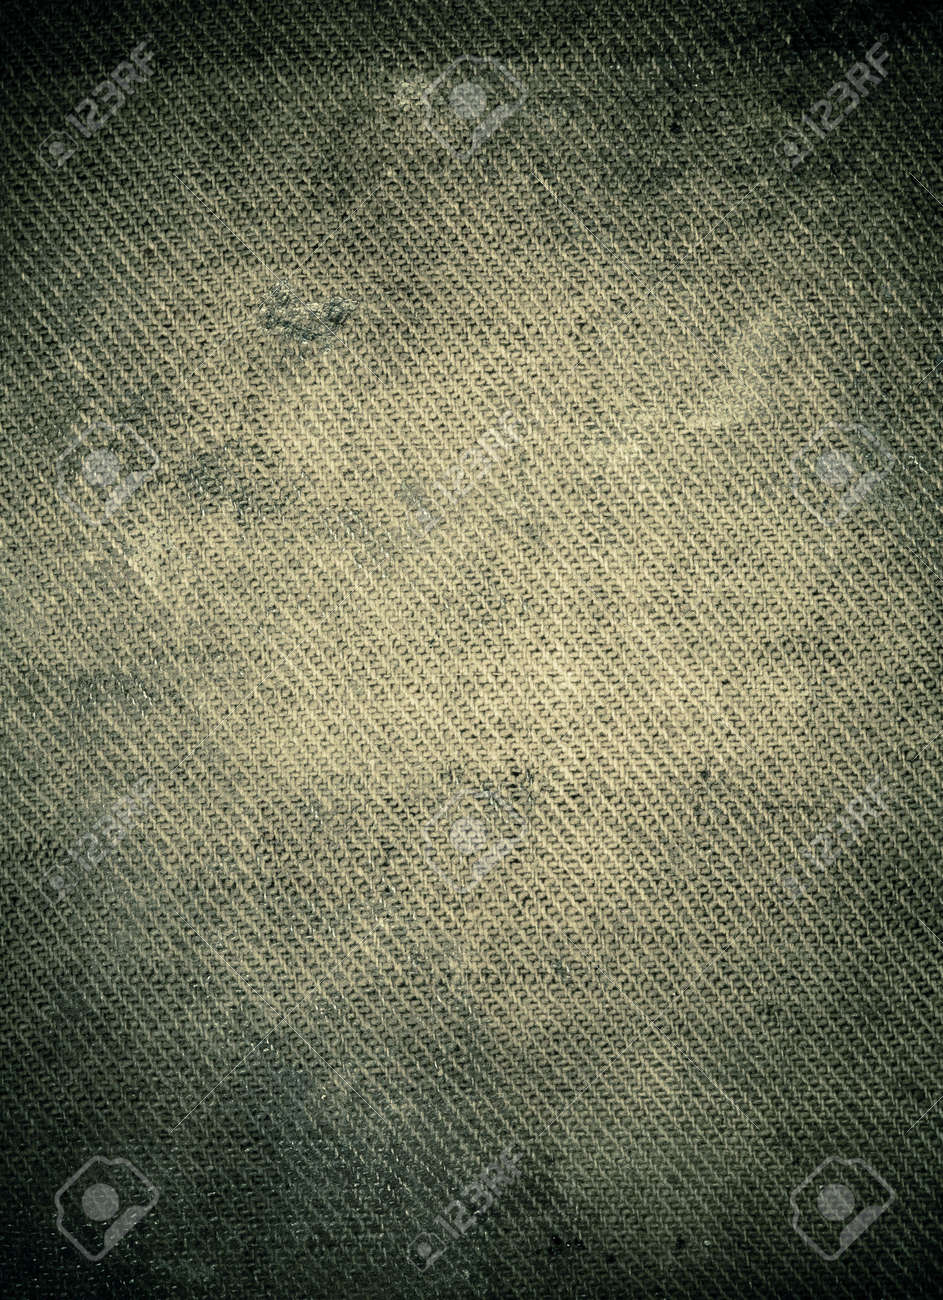 Spooky dark stained burlap background with dark borders end empty space in center Stock Photo - 6553562